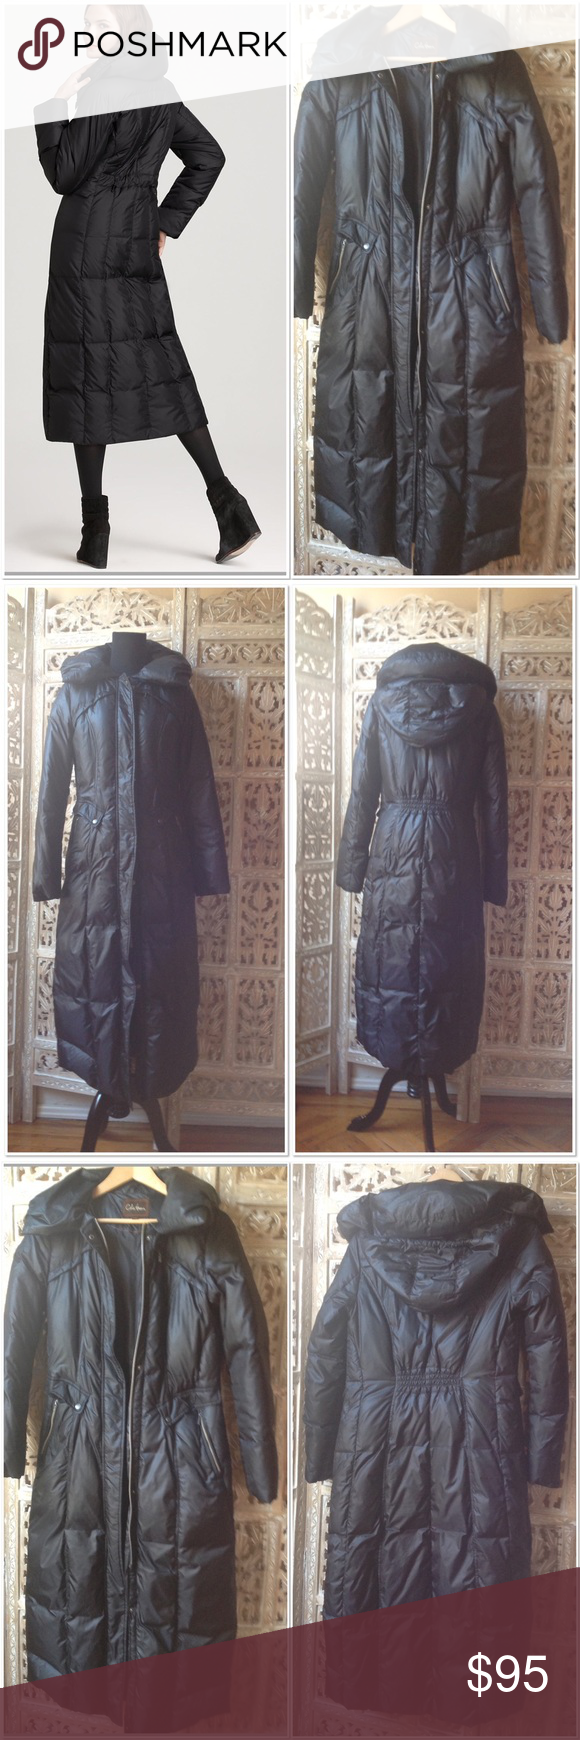 9a1d6b2fbb05 💫One day sale 💫 Cole Haan long maxi down coat S Cole Haan long maxi down  coat size S in black. Retail price $498. Coat has been worn once or twice.